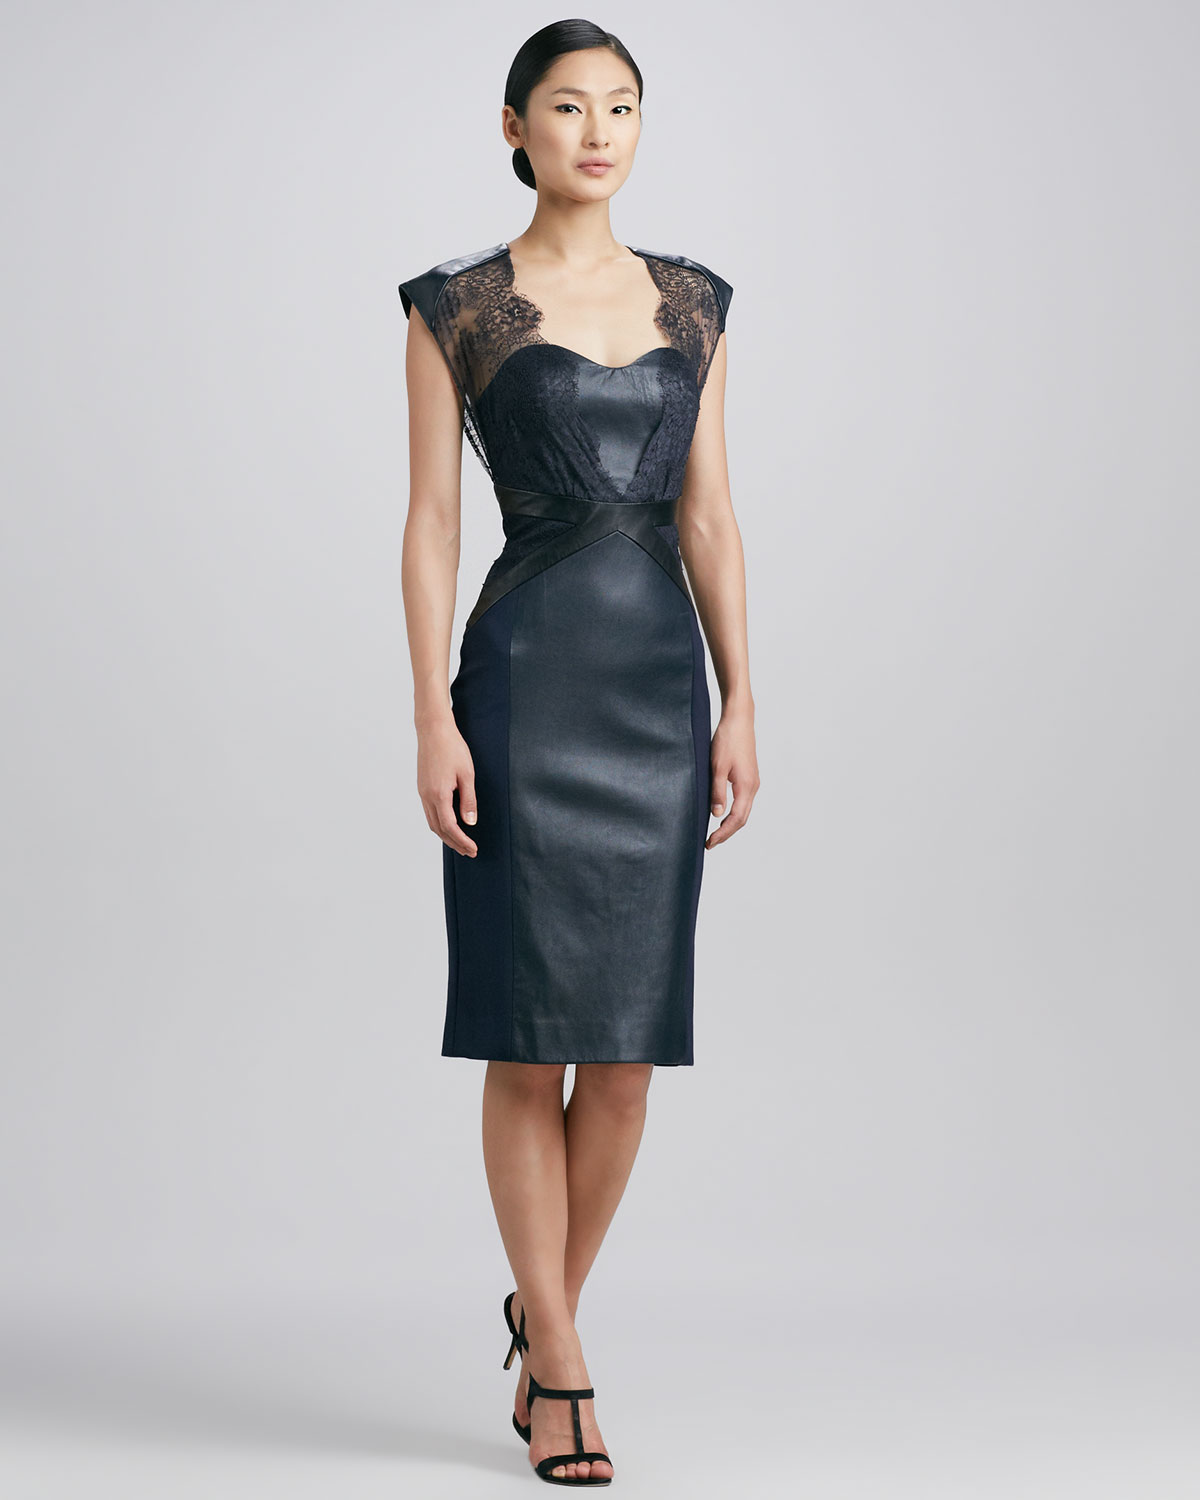 Leather Cocktail Dresses